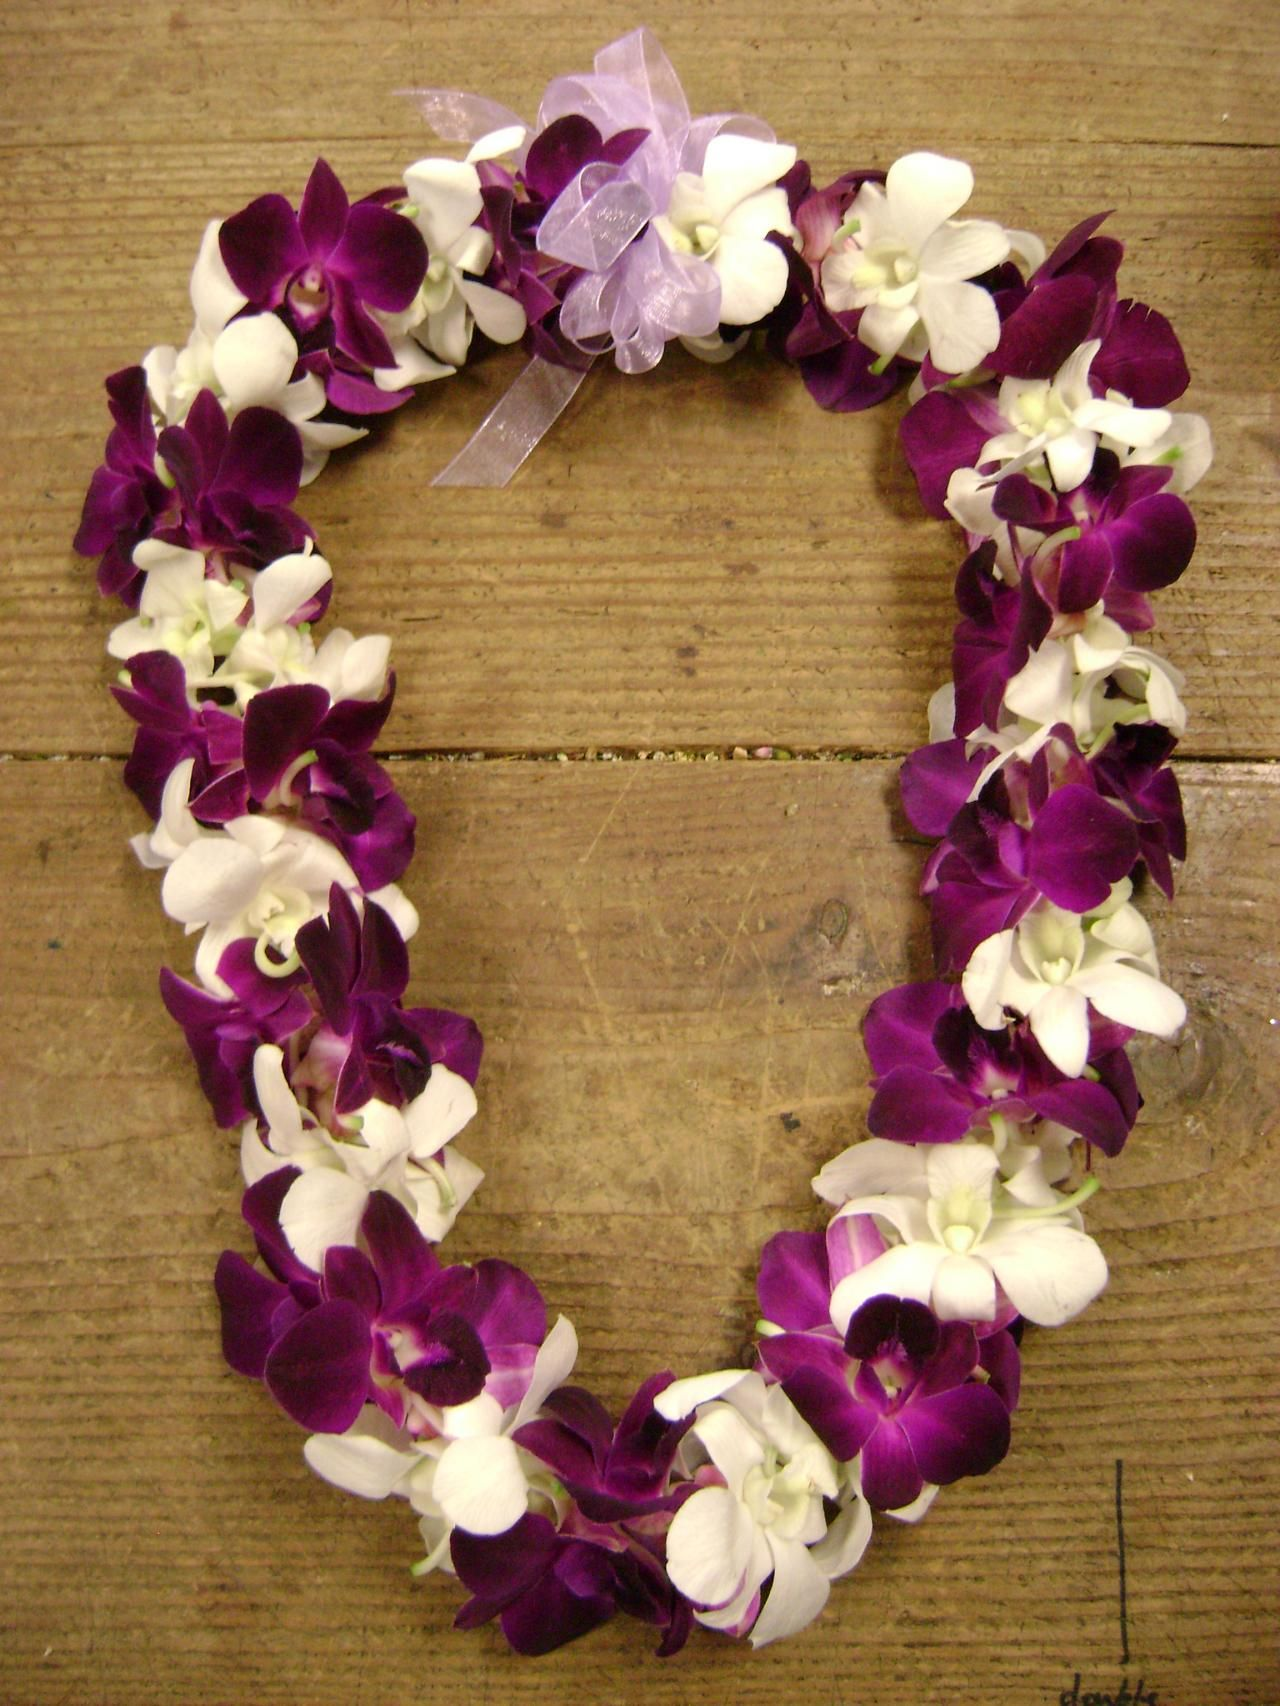 Generous white flower lei images wedding and flowers ispiration 3 white and purple dendrobium orchids leis beautiful leis mightylinksfo Images